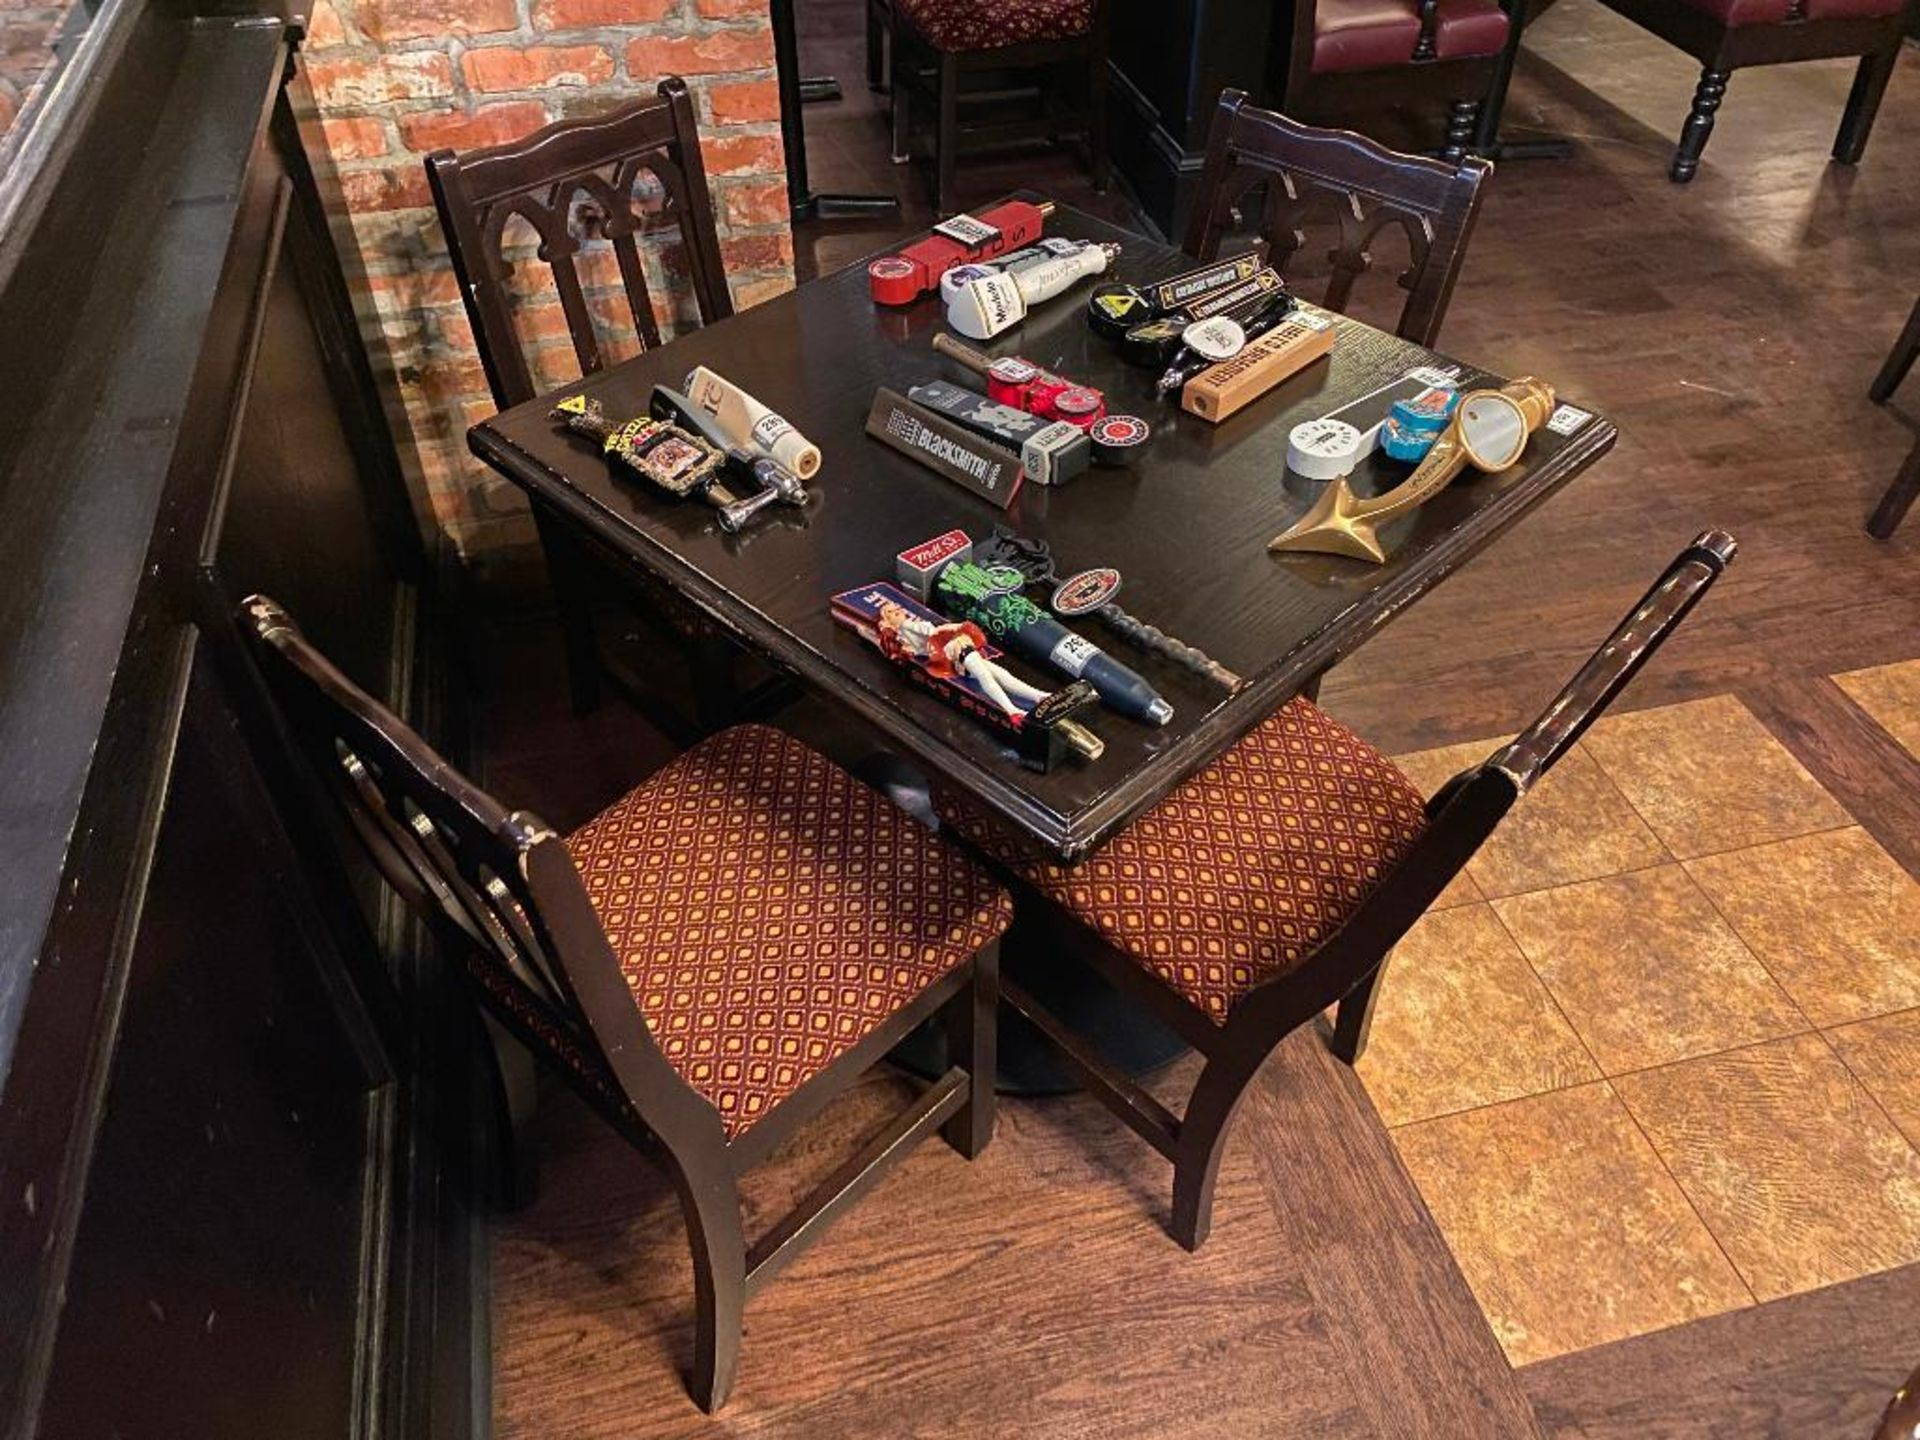 """SQUARE TOP WOODEN TABLE WITH 4 CHAIRS - 36"""" X 36"""" X 31"""" - Image 2 of 2"""